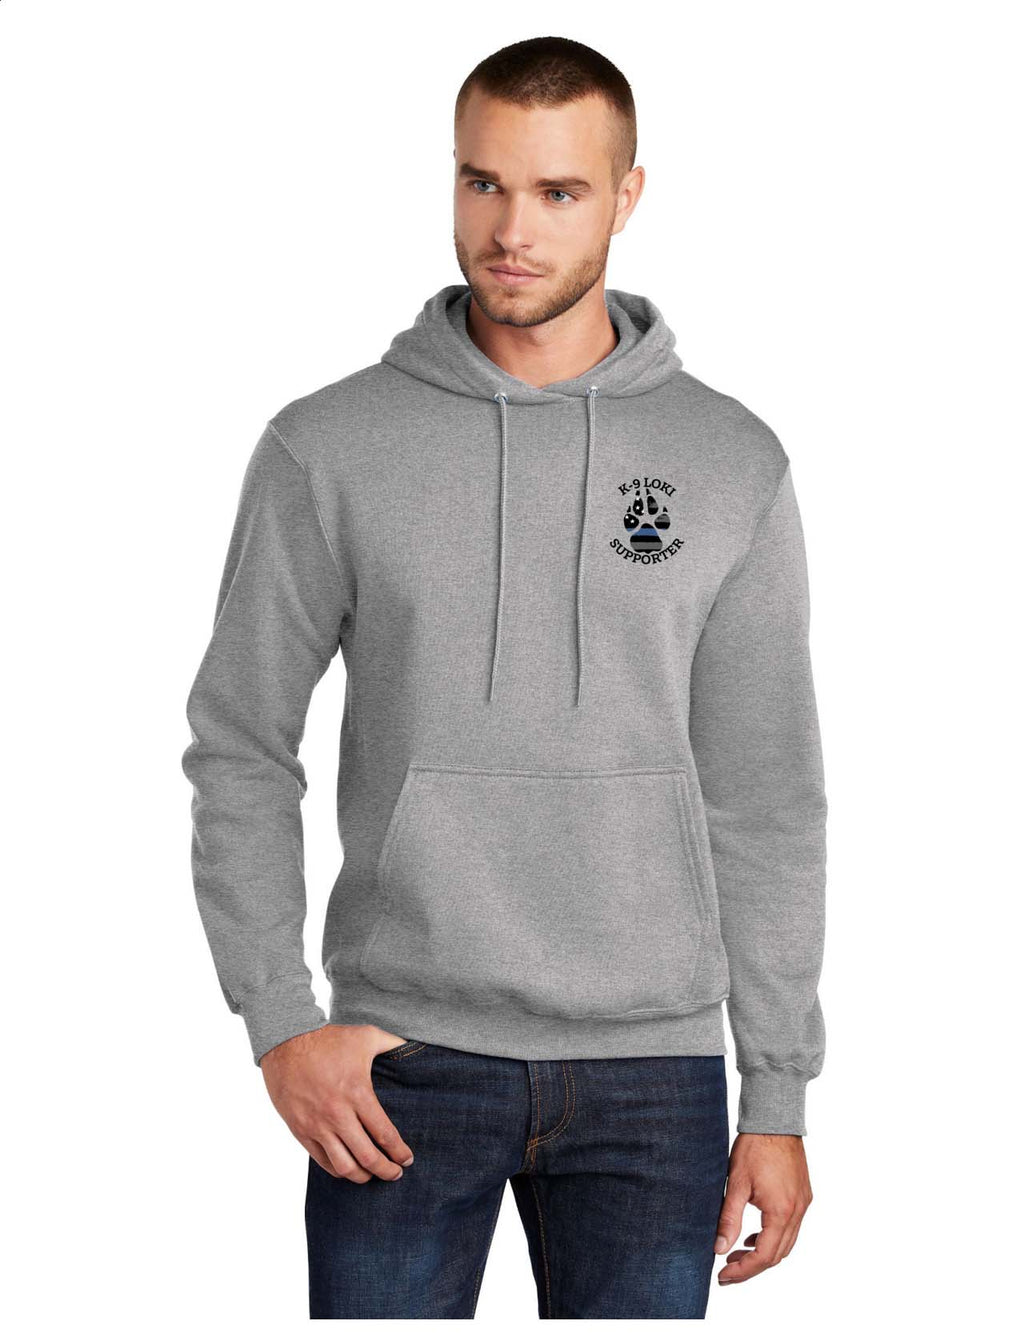 K9 Loki Supporter - Port & Company® Core Fleece Pullover Hooded Sweatshirt